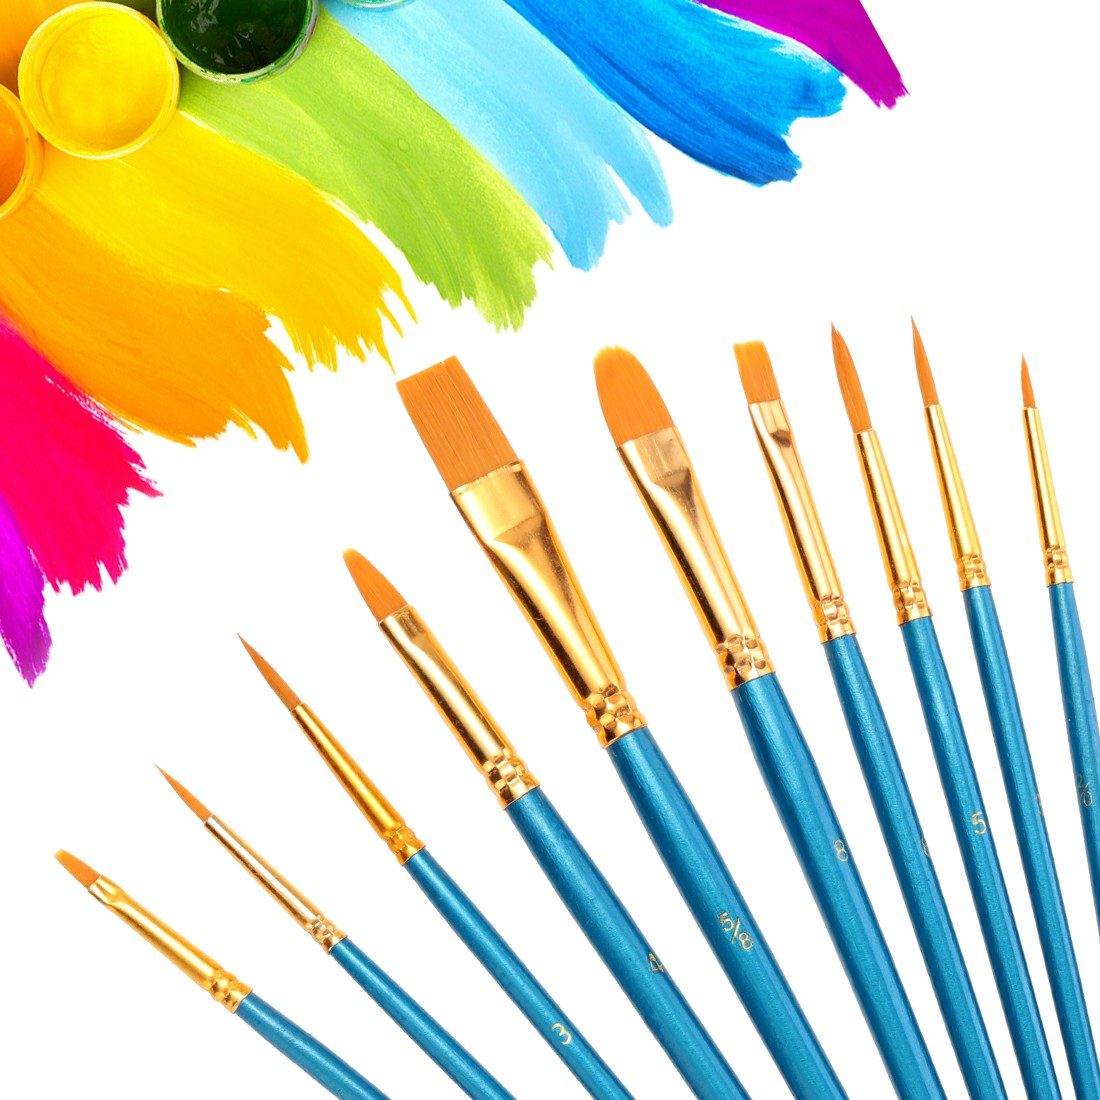 10pcs Face Painting Brushes Round Flat Tip Artist Paint Drawing Brush Glitter Art Set